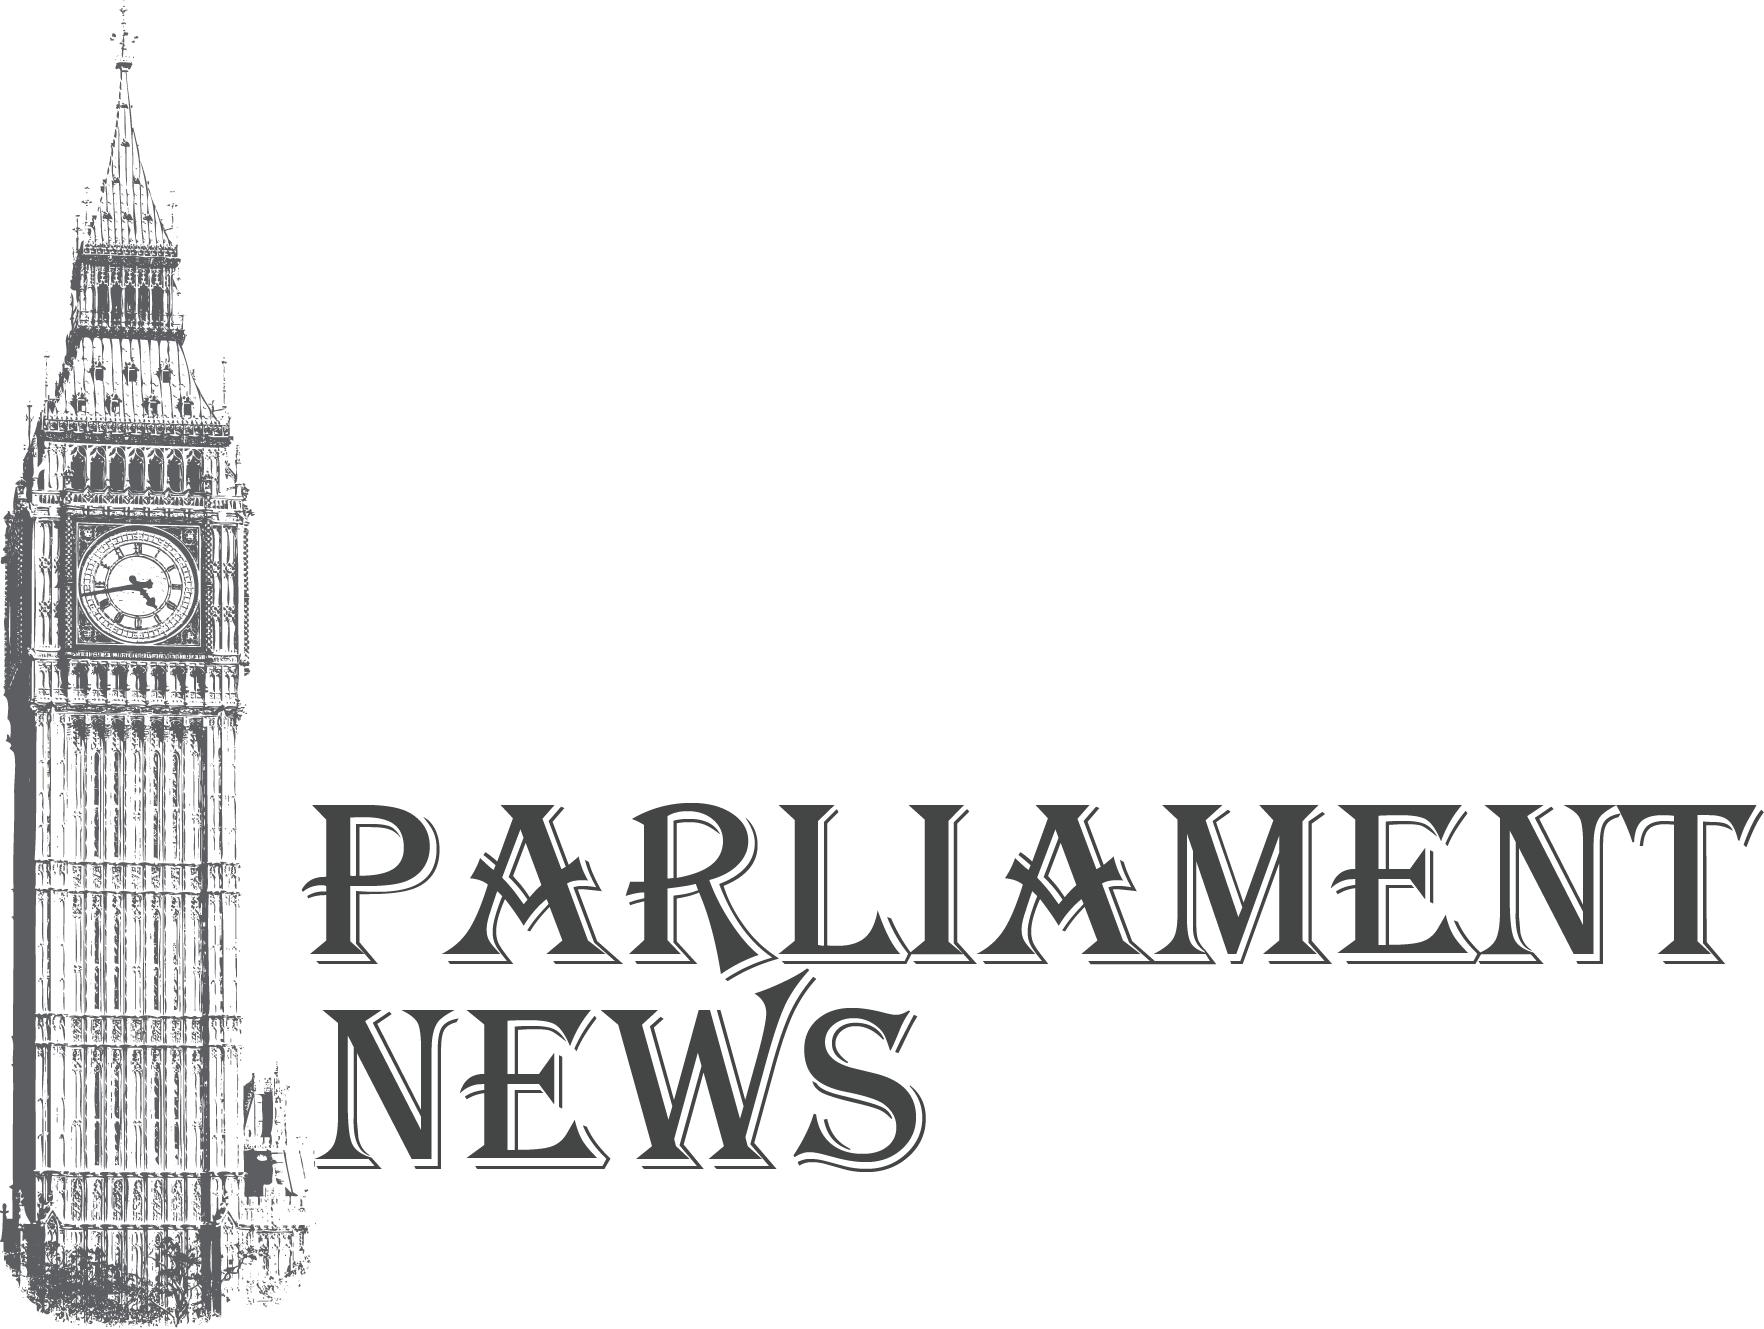 Parliament News